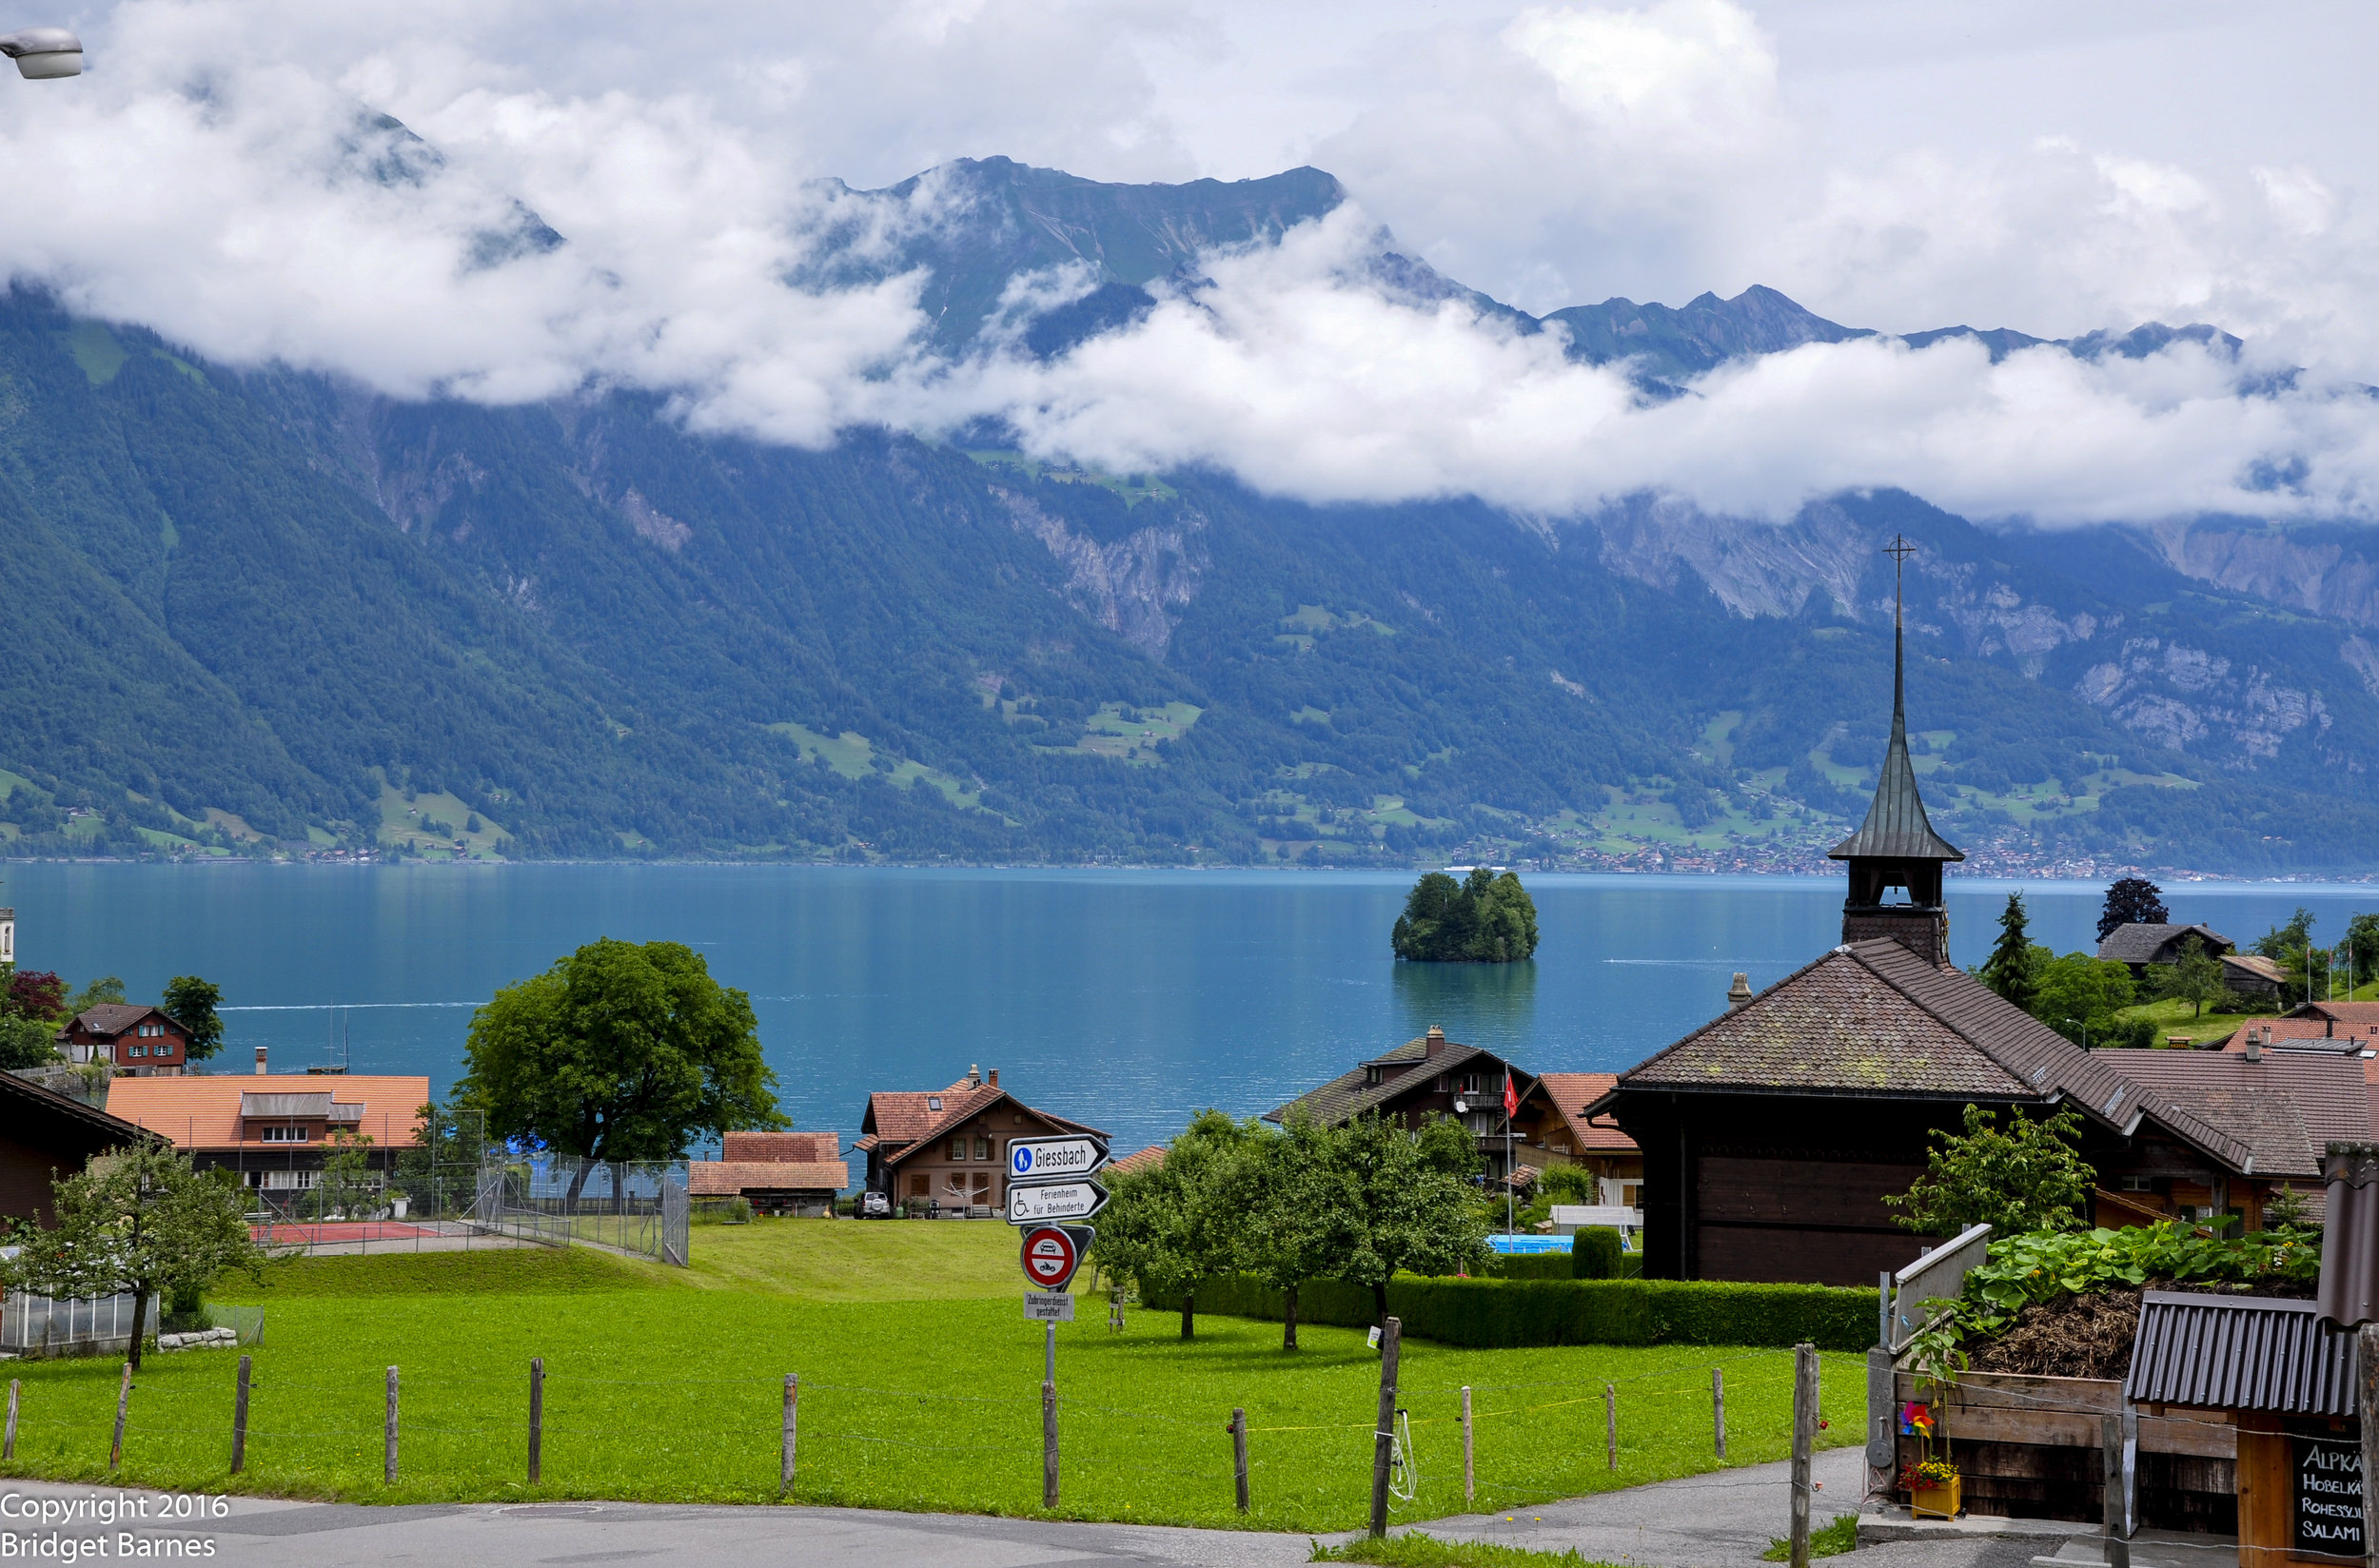 A view of Iseltwald on Lake Brienz